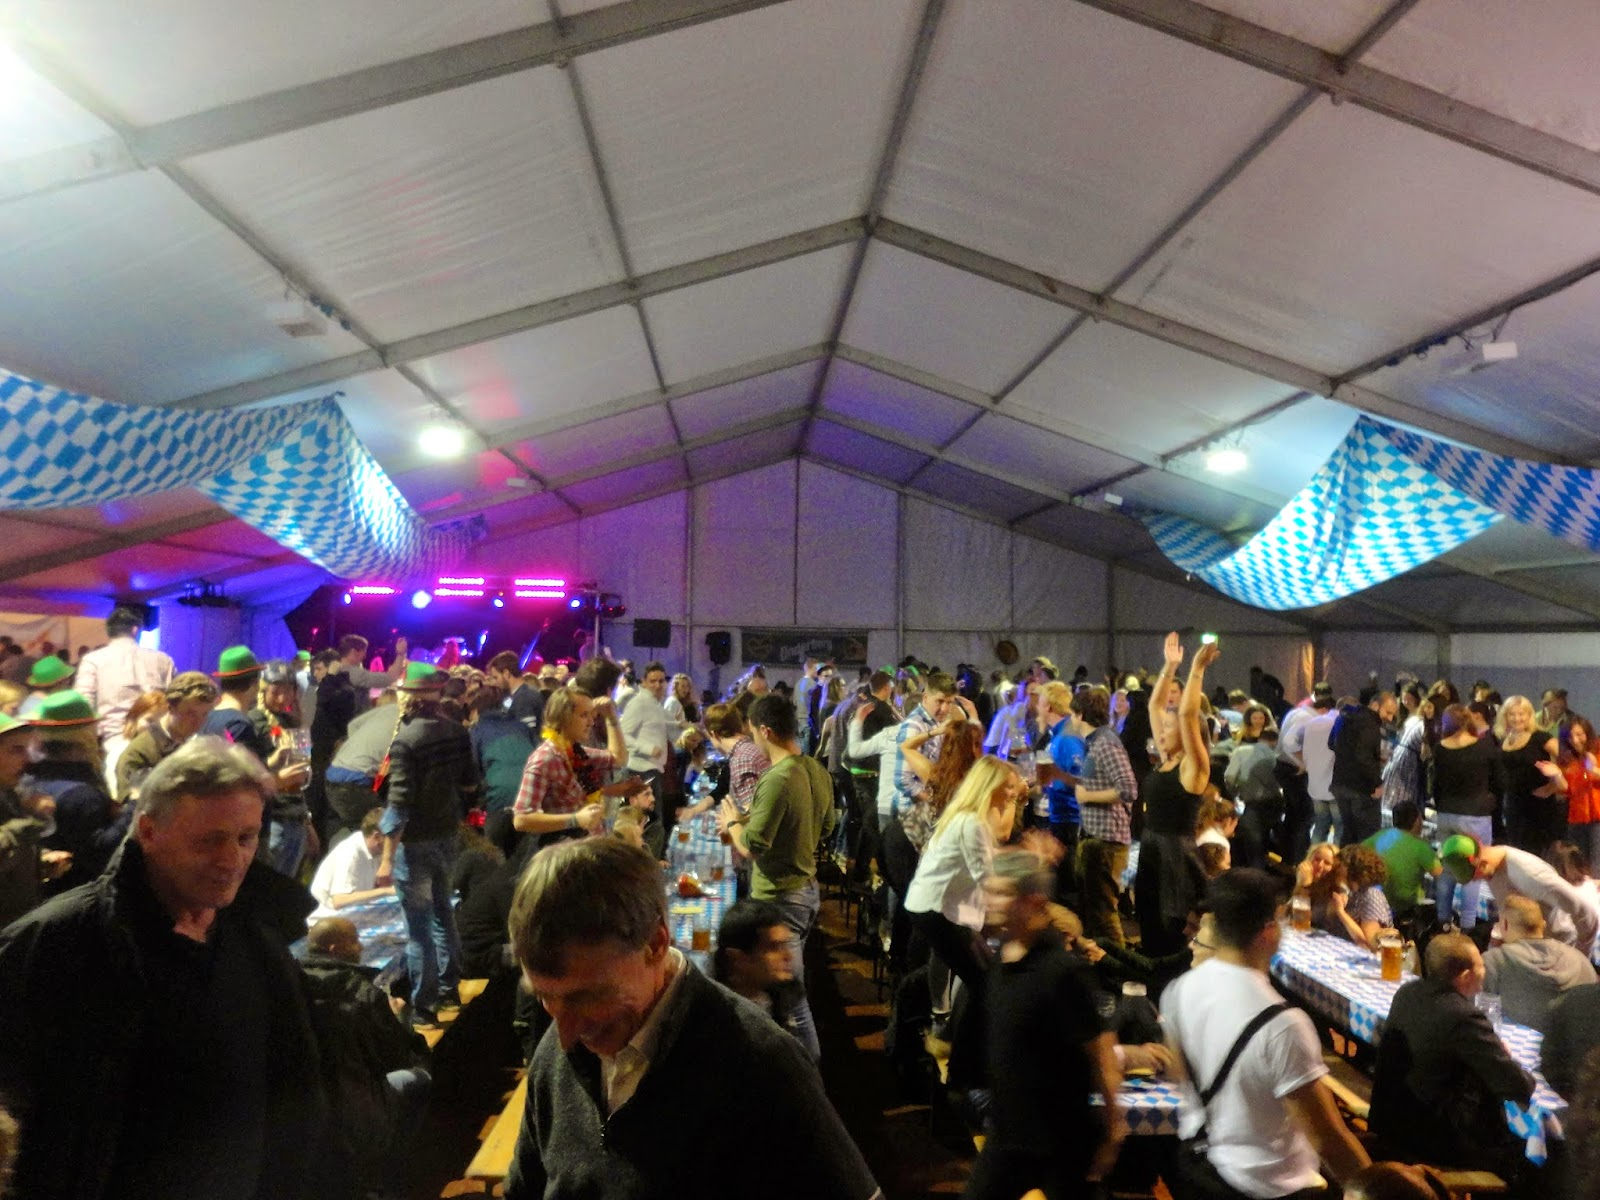 edinburgh oktoberfest beer tent interior